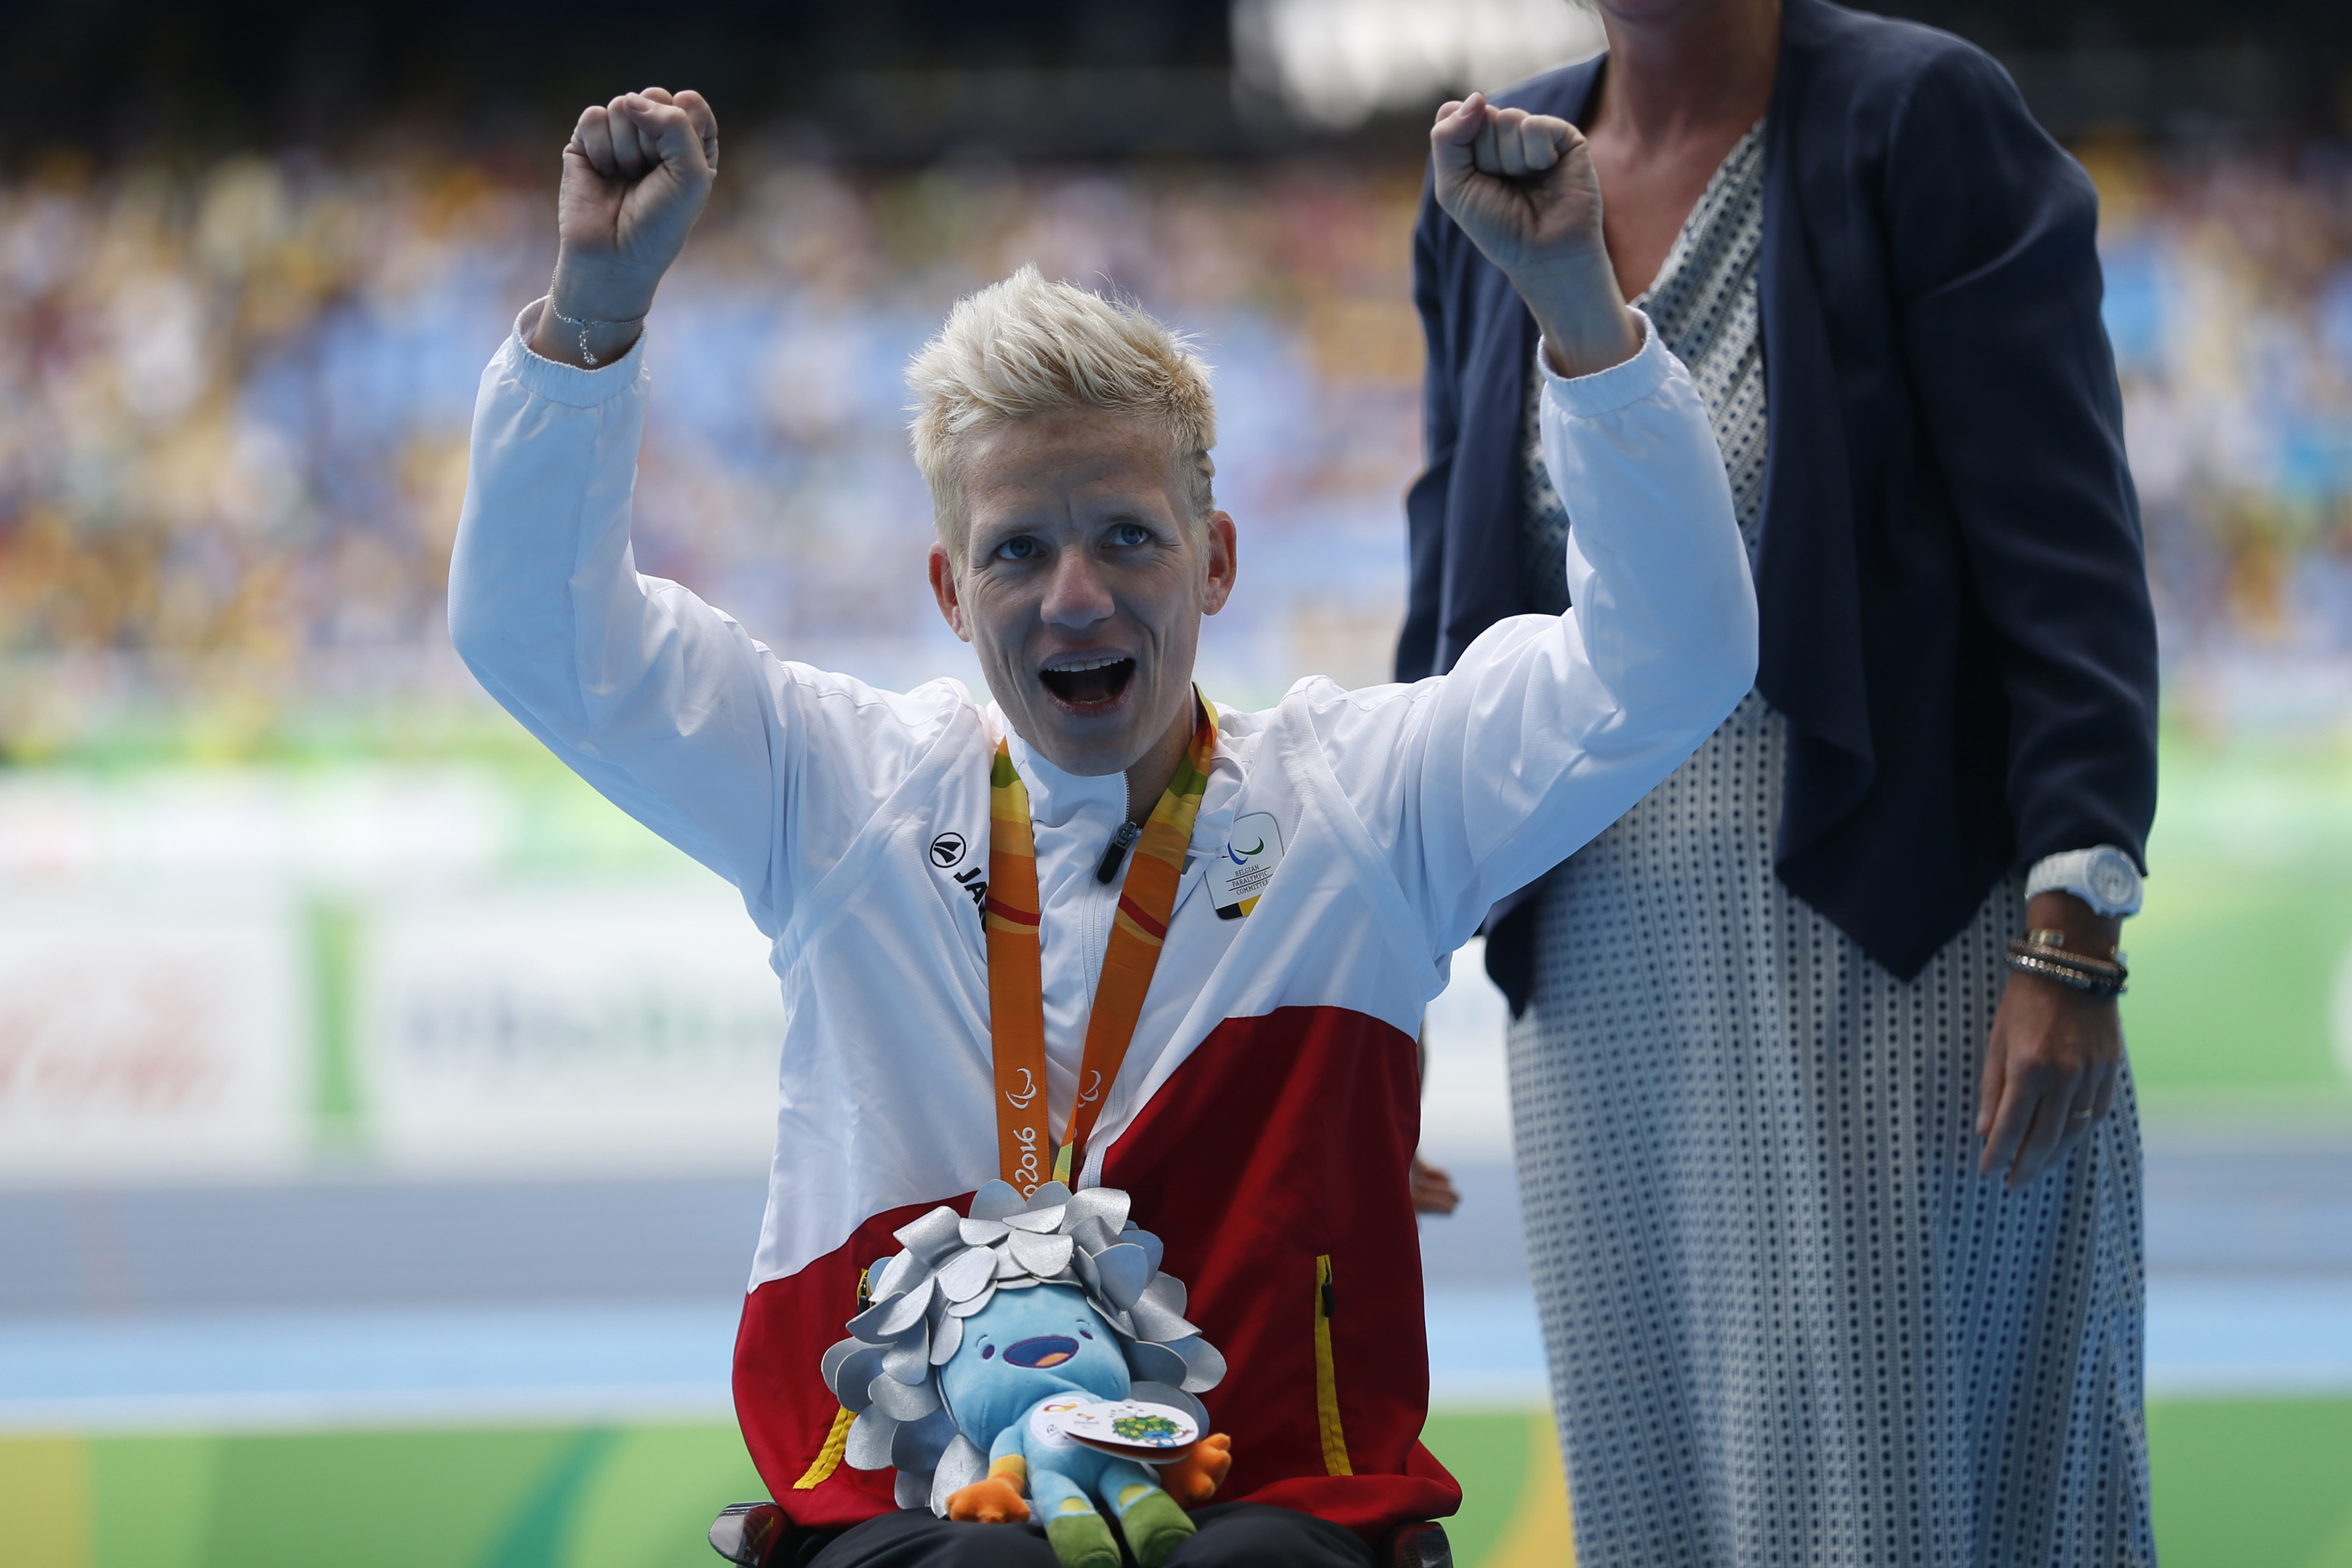 Belgium's Marieke Vervoort celebrates her silver medal win in the women's 400-meter T52 final, during the Rio 2016 Paralympic Games, at the Olympic Stadium, in Rio de Janeiro, Brazil, Saturday, Sept. 10, 2016. (AP Photo/Mauro Pimentel)